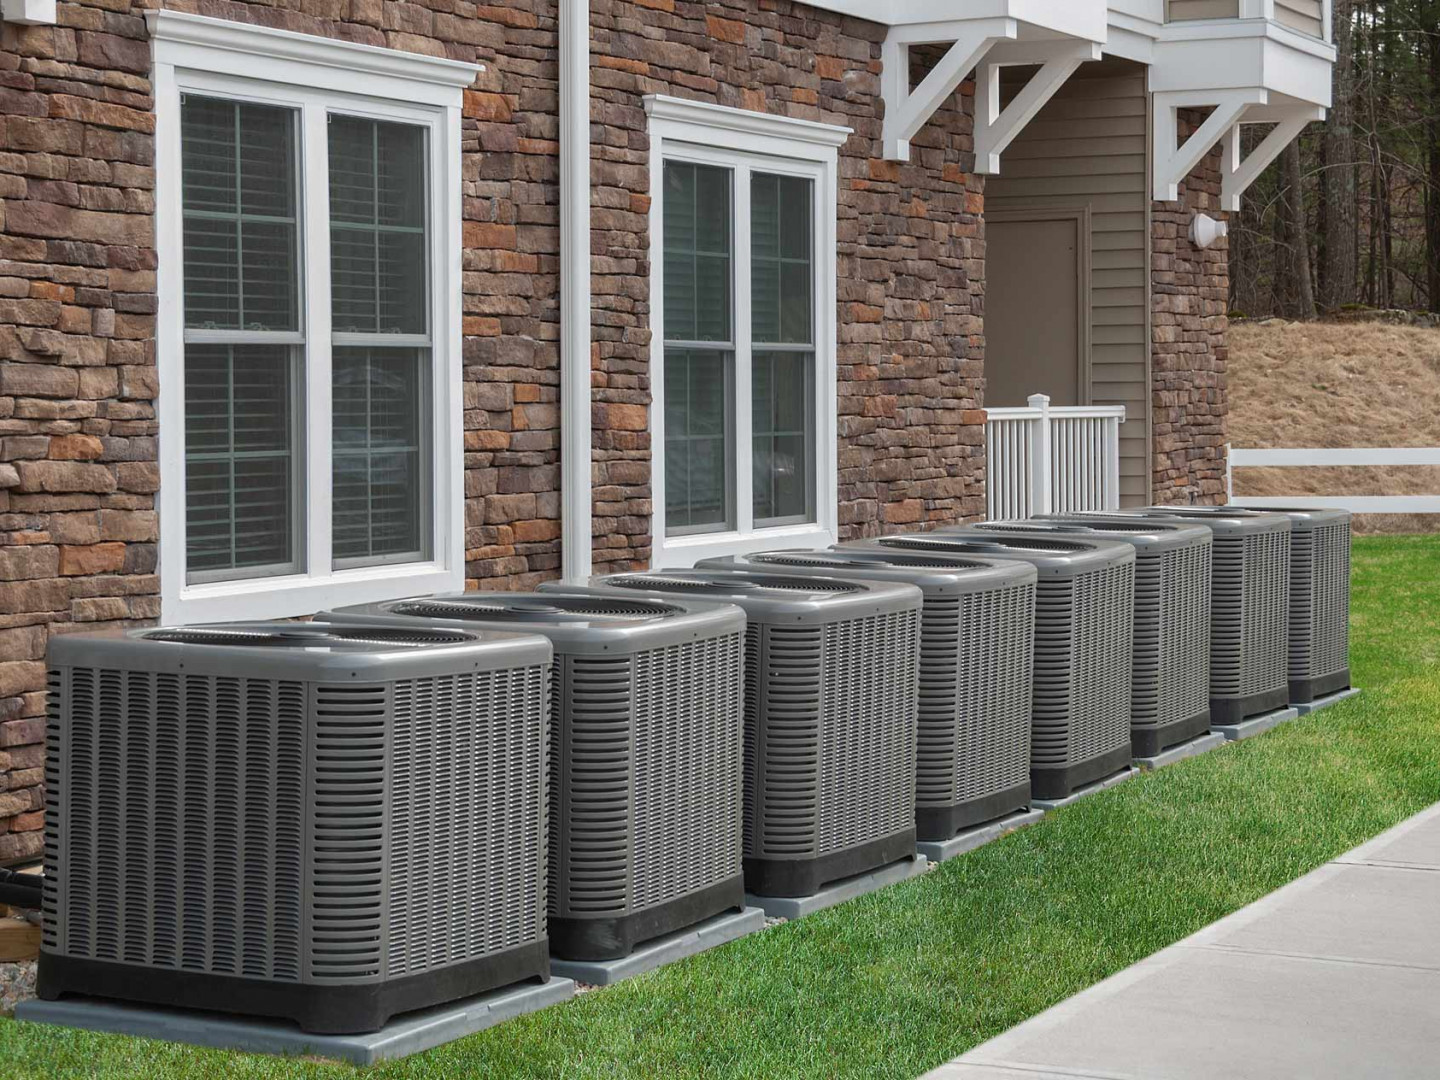 3 benefits of maintaining your HVAC system